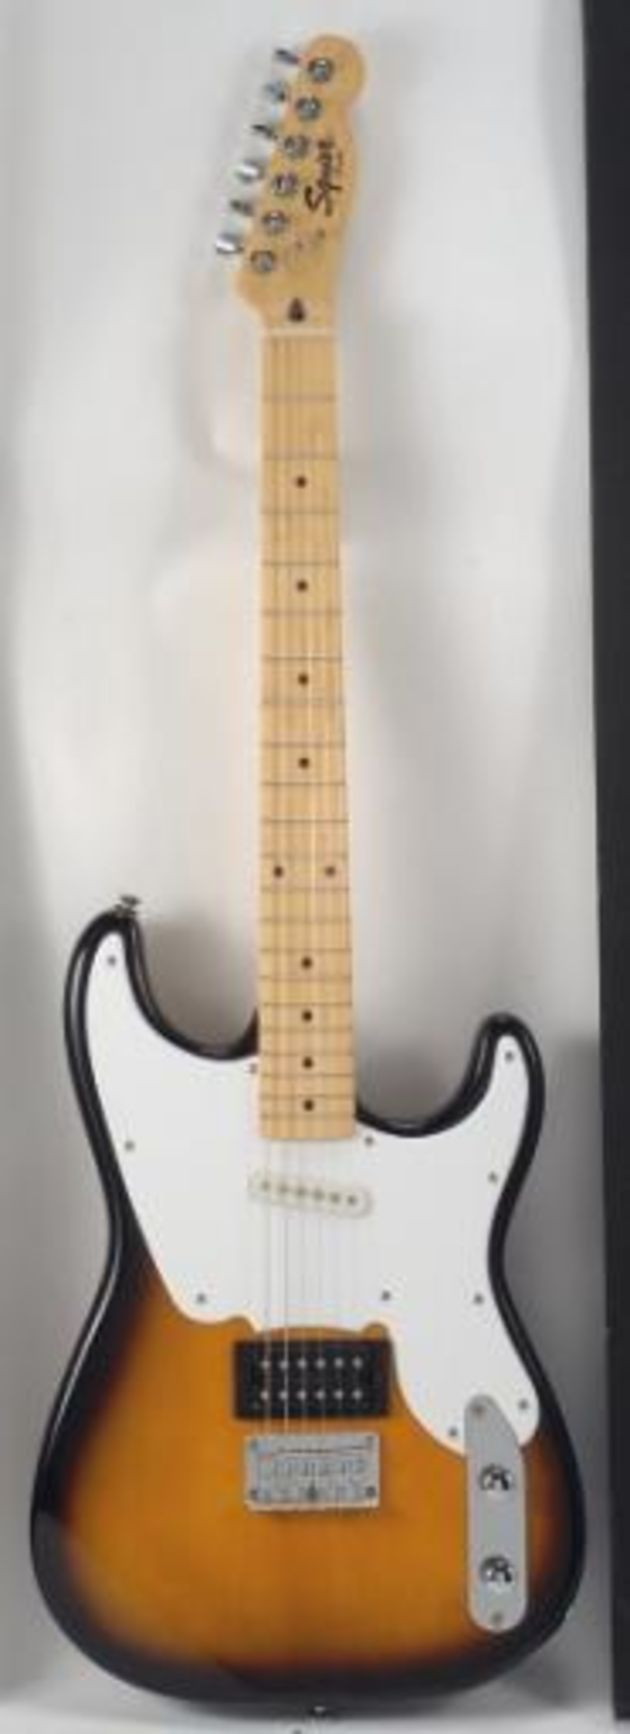 The Squier '51: part Strat, part Tele and part Precision